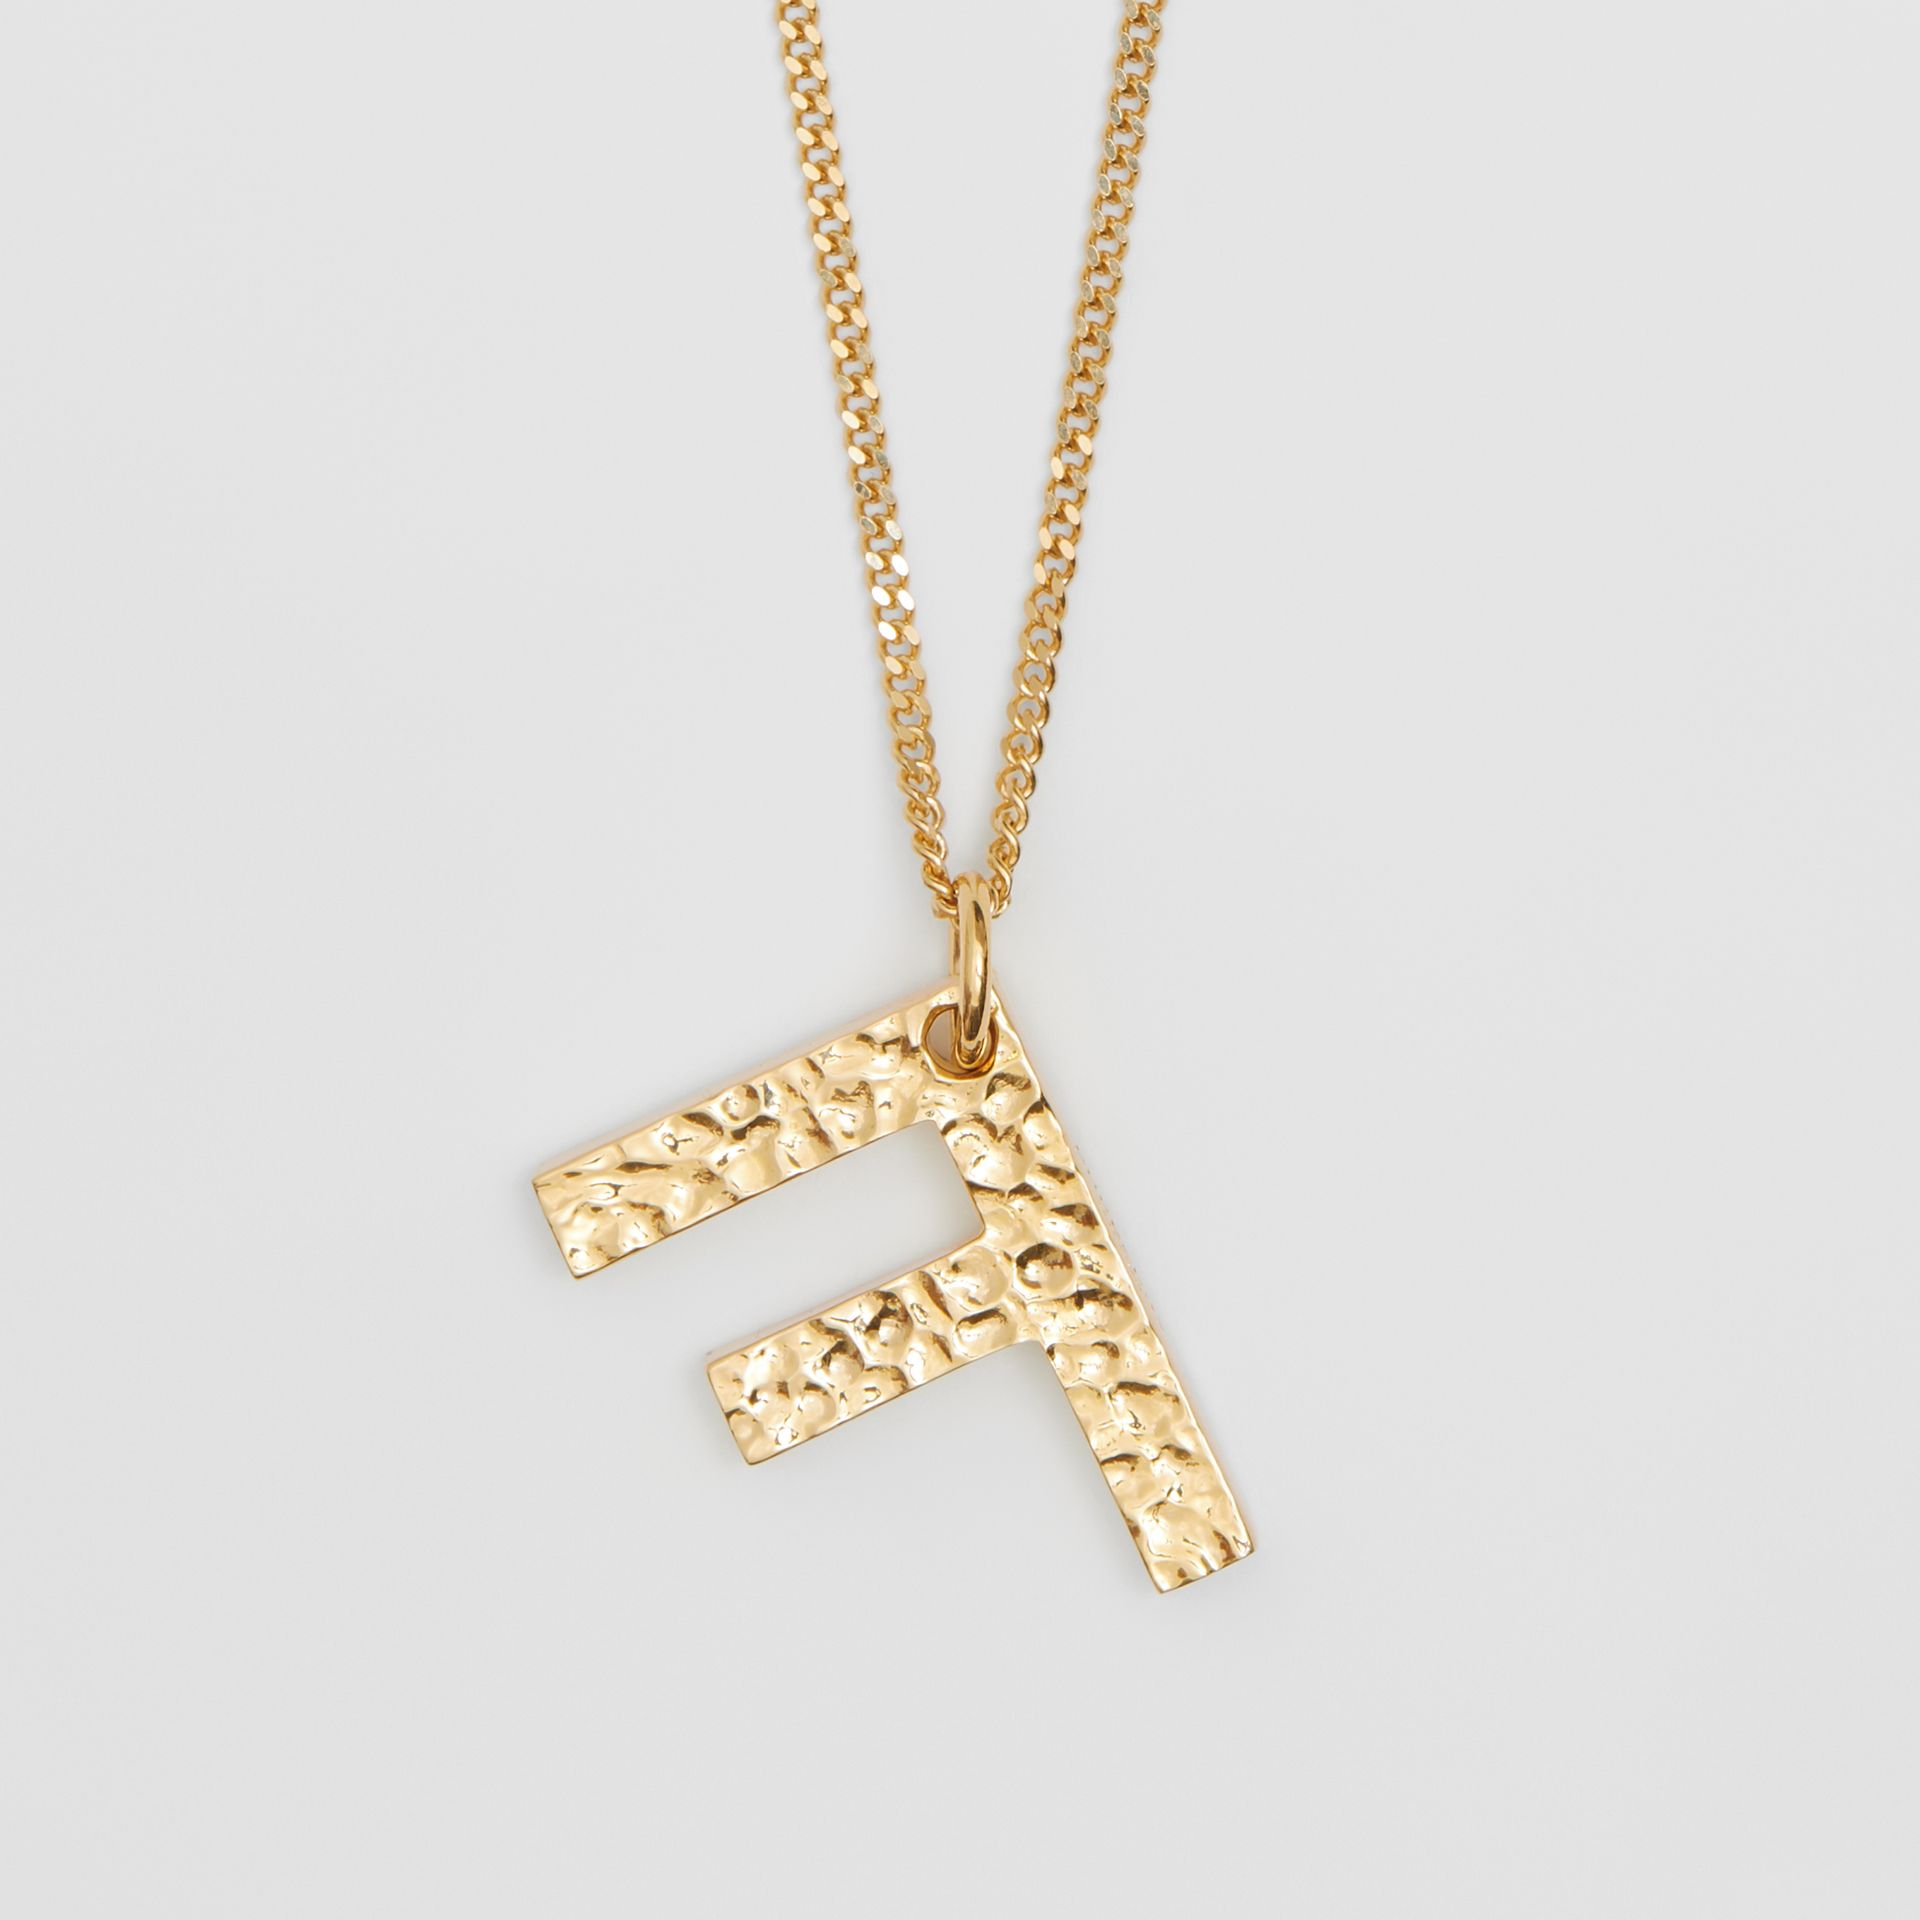 'F' Alphabet Charm Gold-plated Necklace in Light - Women | Burberry United Kingdom - gallery image 2